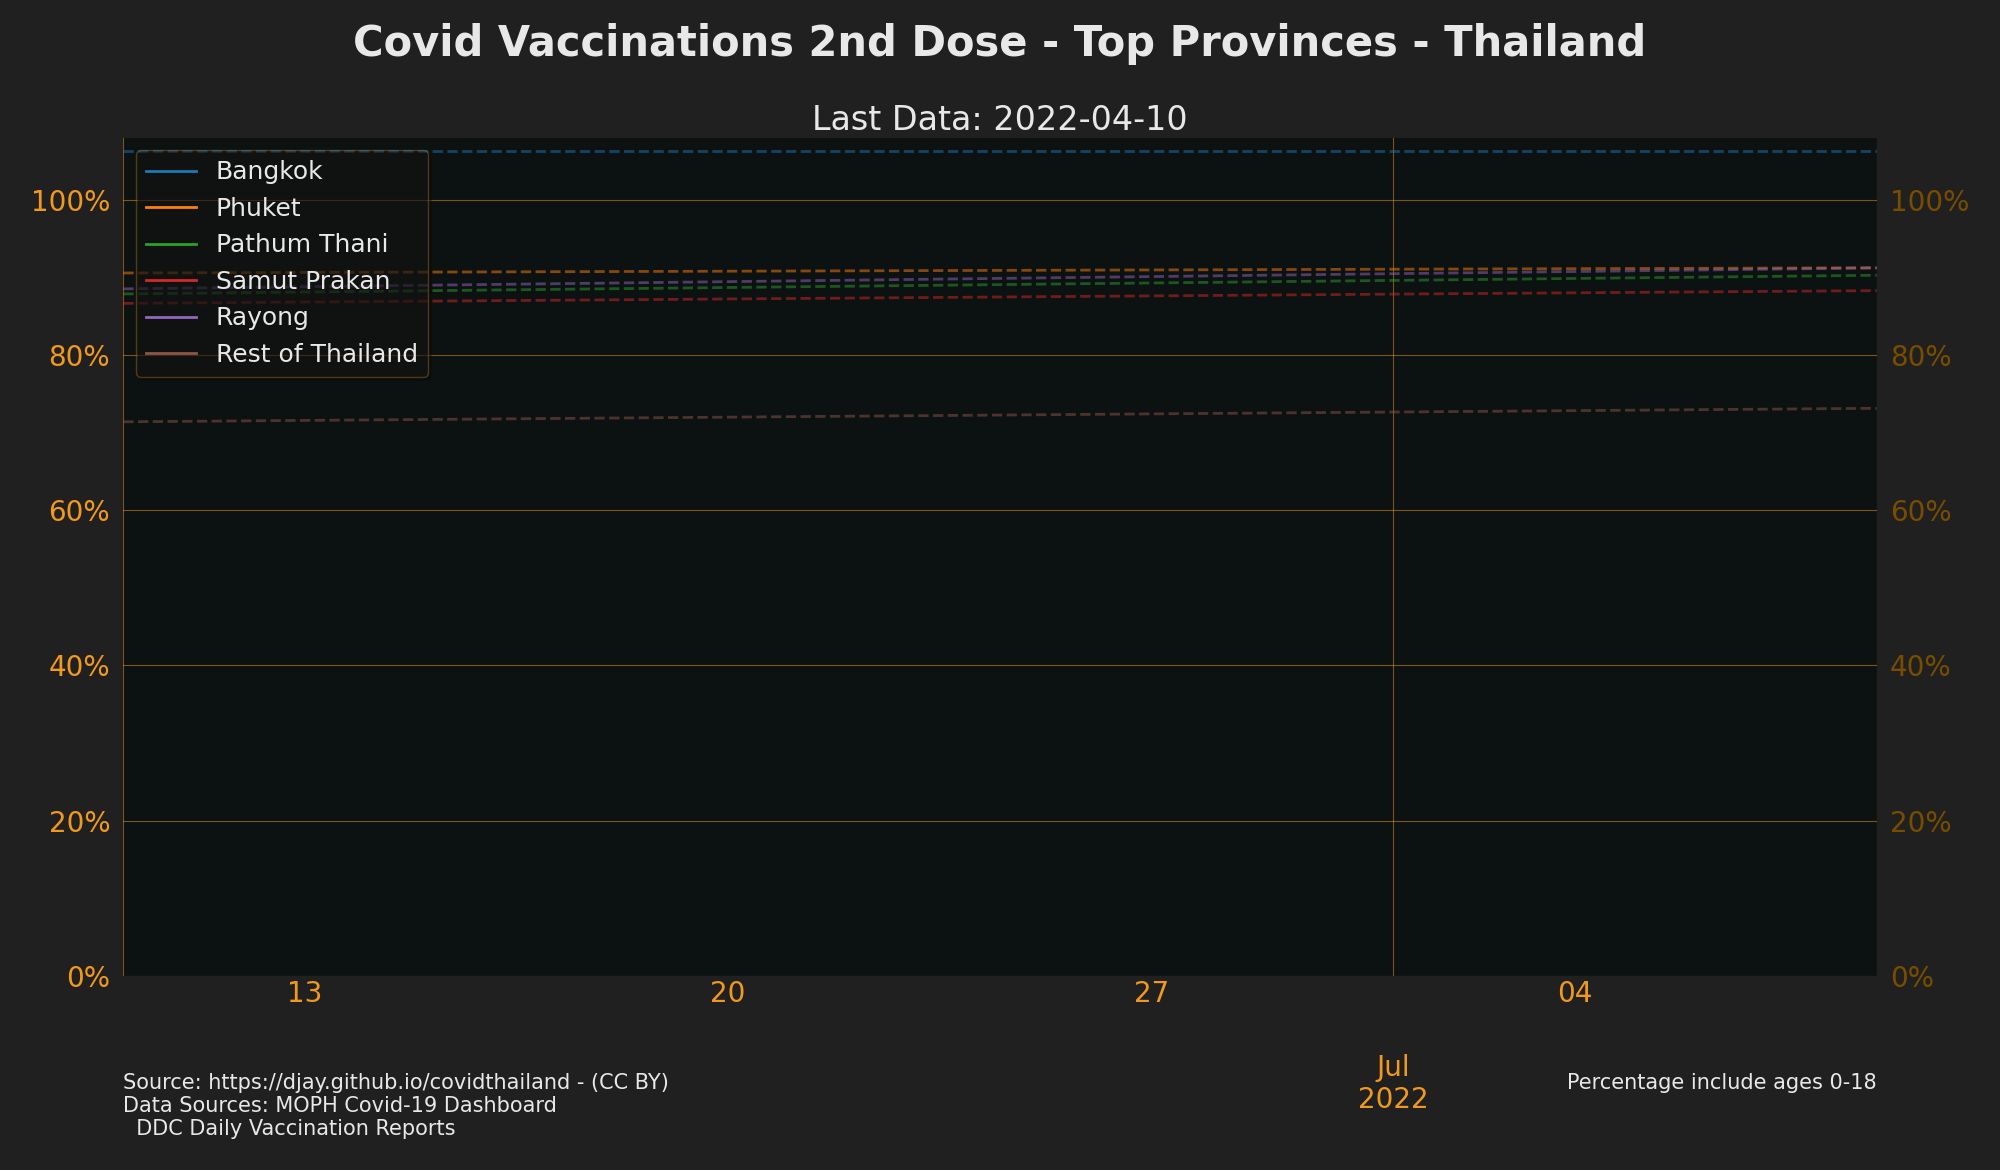 Top Provinces by Vaccination 2nd Jab